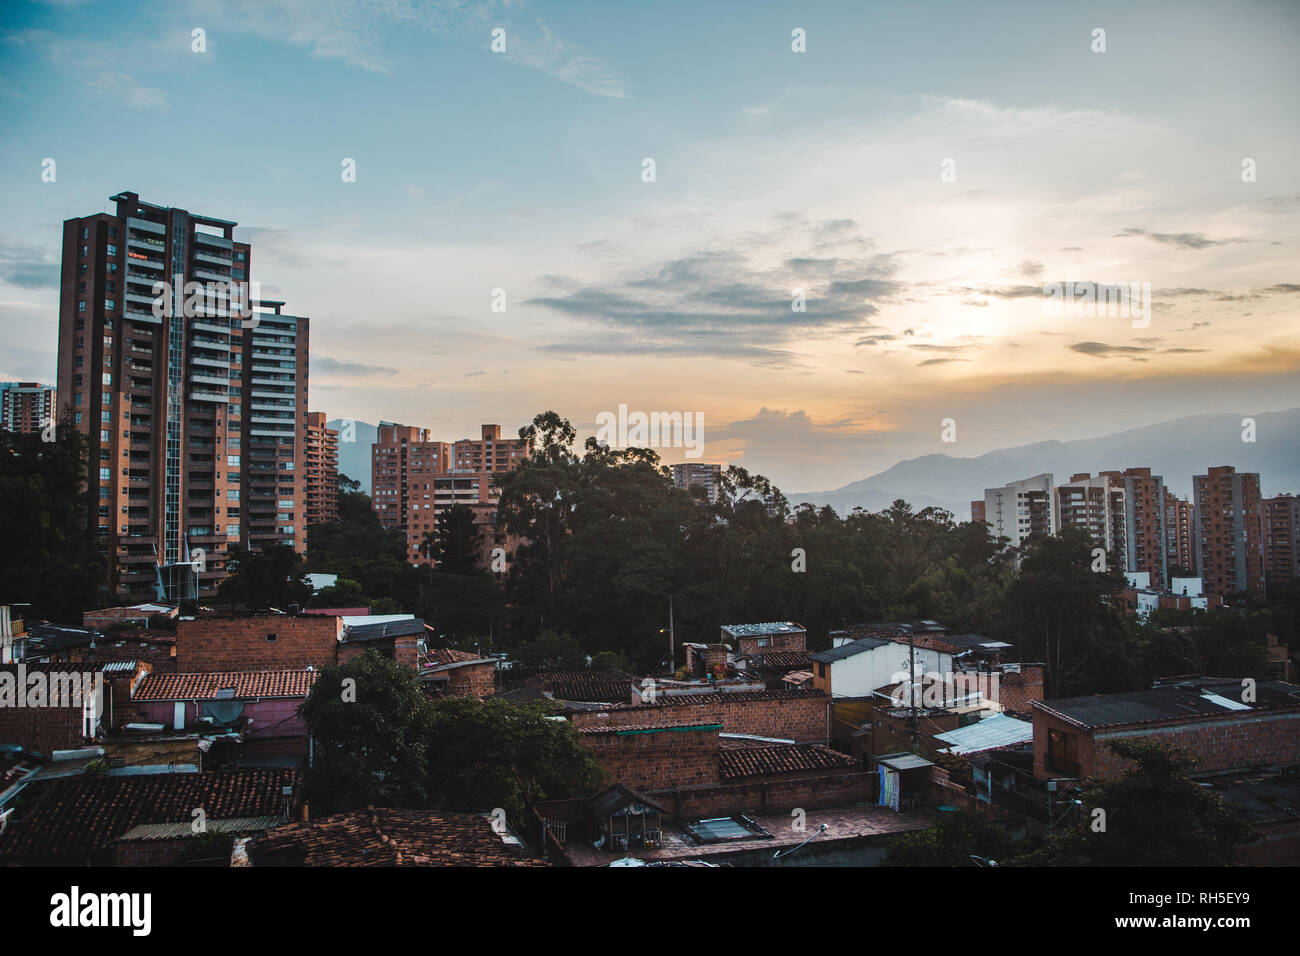 Views over the sprawling valley city of Medellín, Colombia from the area of El Poblado Stock Photo